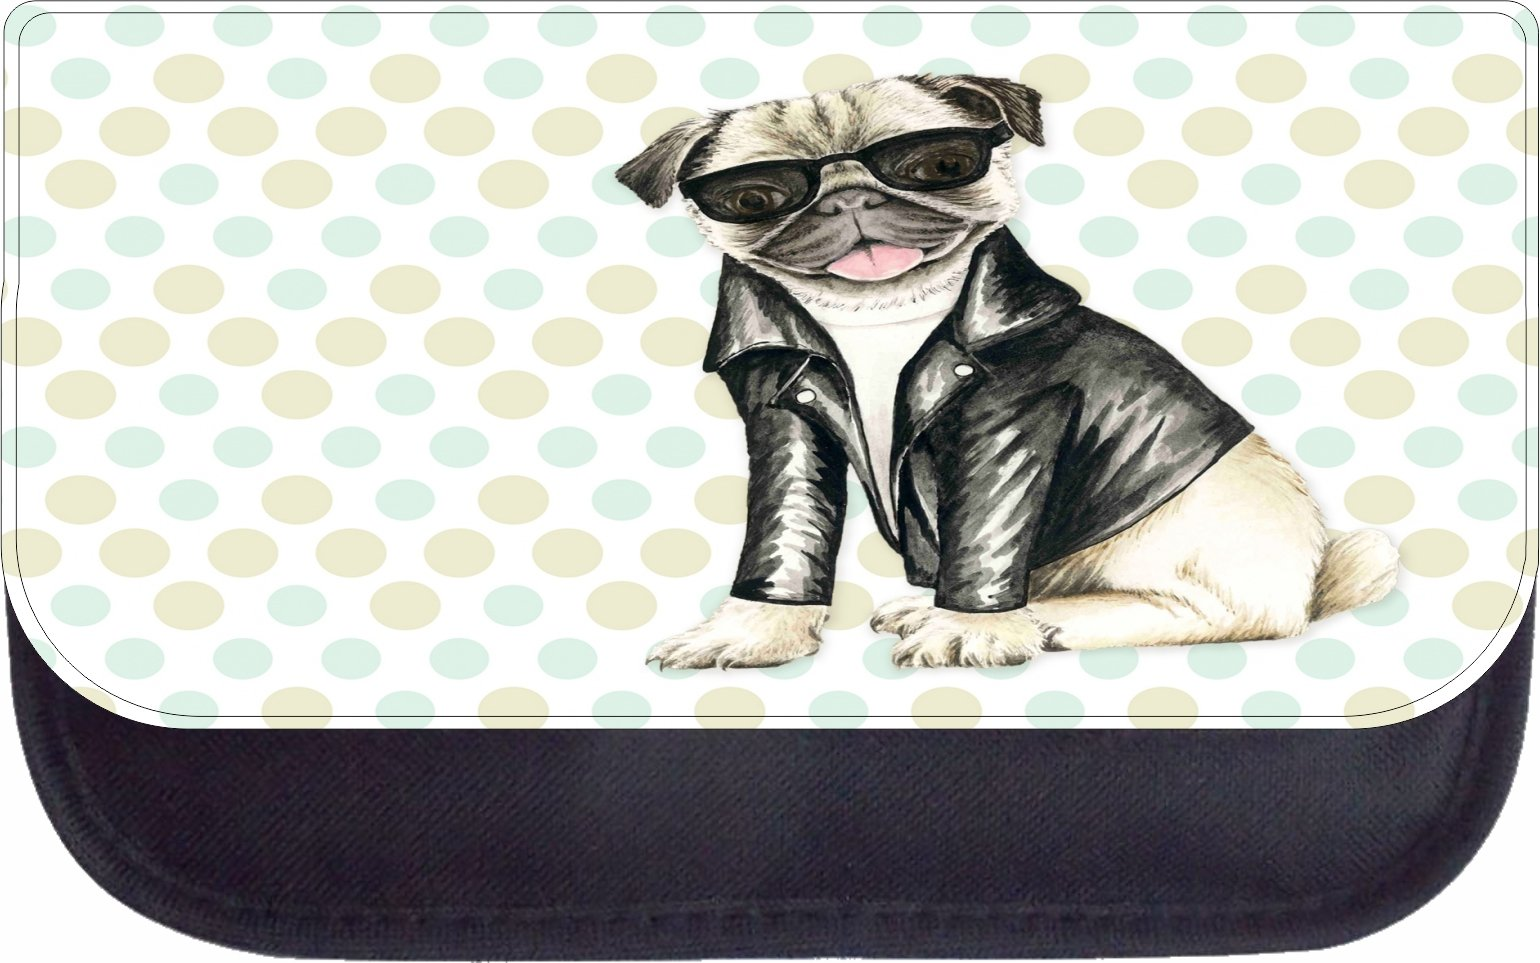 Vintage Retro Style Hippie Pug Puppy Dog in Black Shades and a Motorcycler's Jacket - 5'' x 8.5'' Black Multi-Purpose Cosmetic Case - Bag - with 2 Zippered Pockets and Nylon Lining by Rosie Parker Inc.